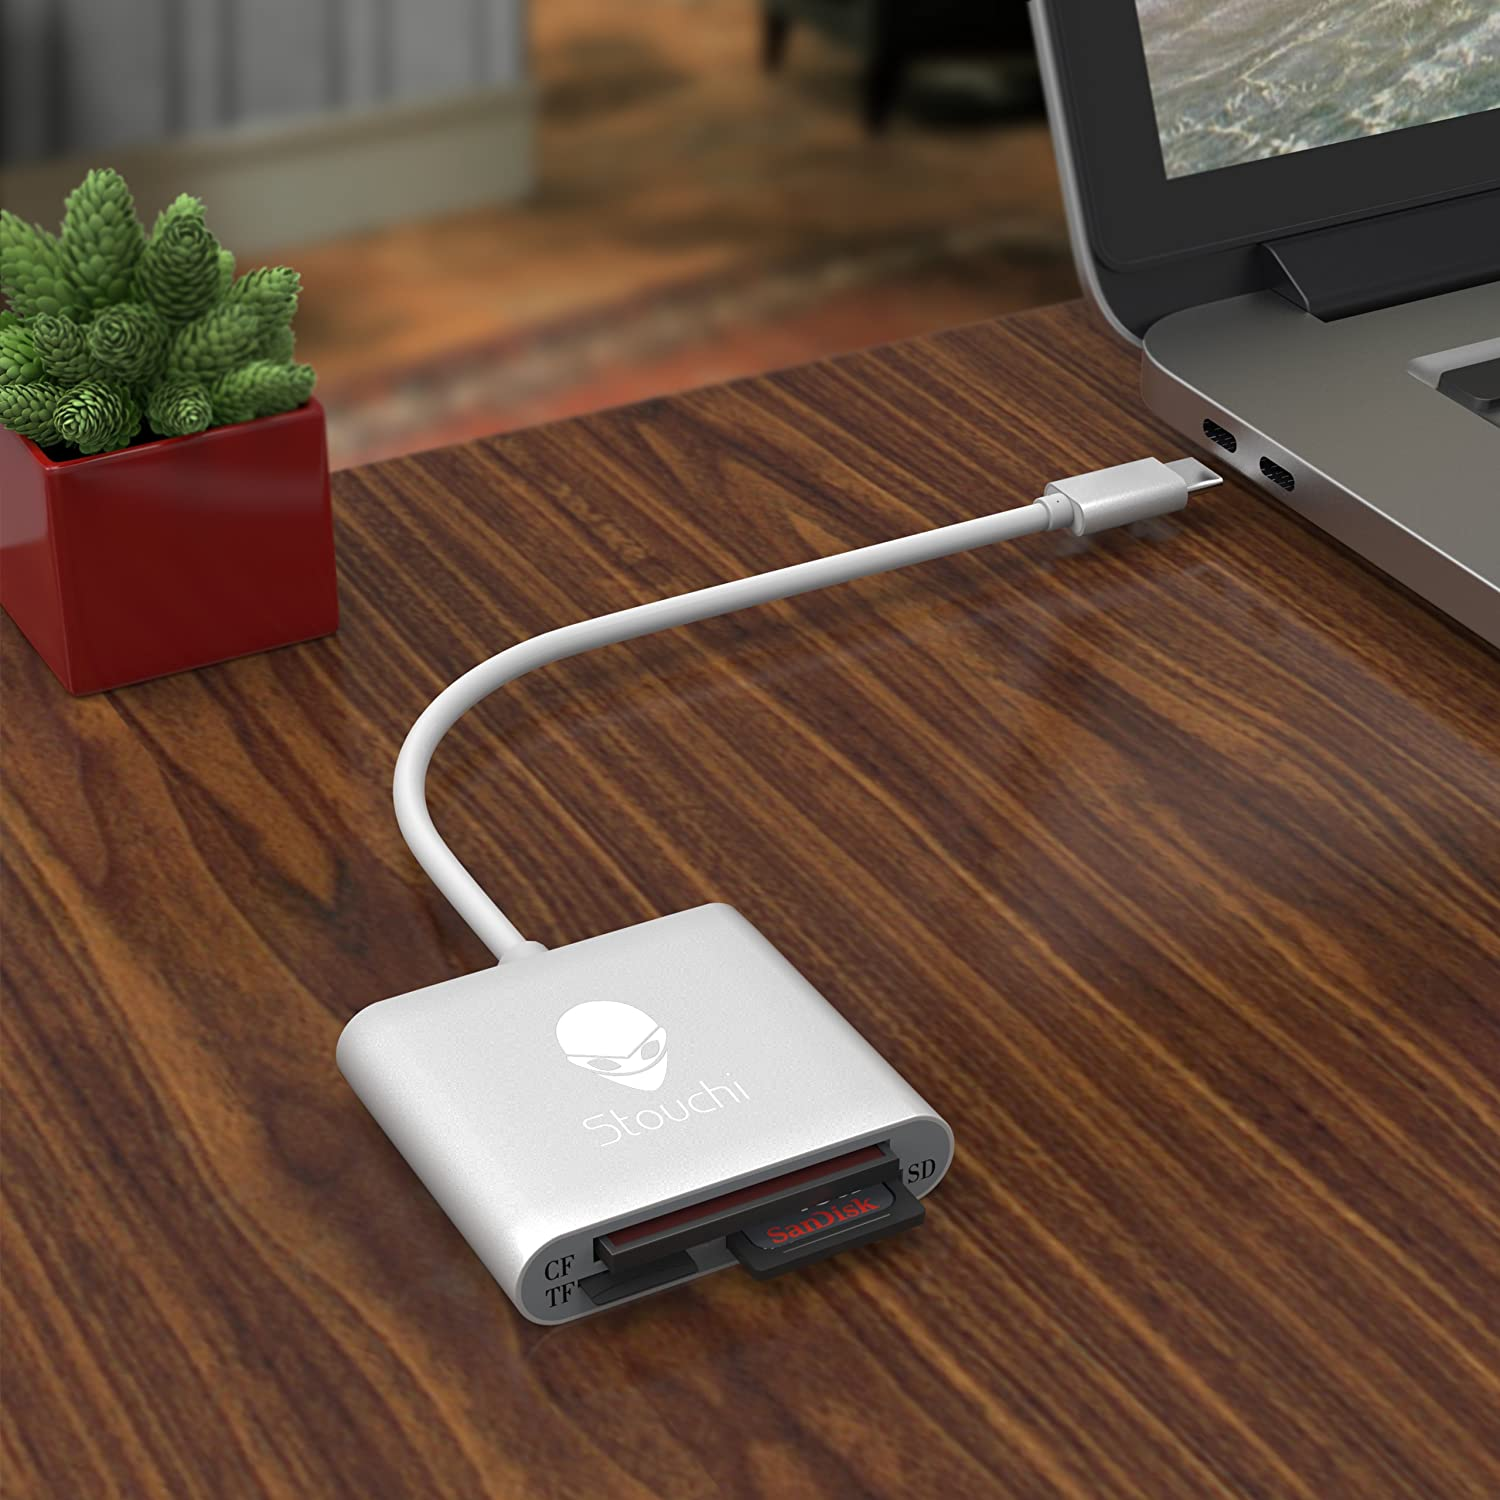 ChromeBook Pixel and Other USB C Devices CF Card Reader Stouchi USB C to CF Card Reader 3 in 1 USB 3.1Type C 5 Gbps Data Transfer Rate to SD//TF Micro SD//CF Card Reader for MacBook Pro